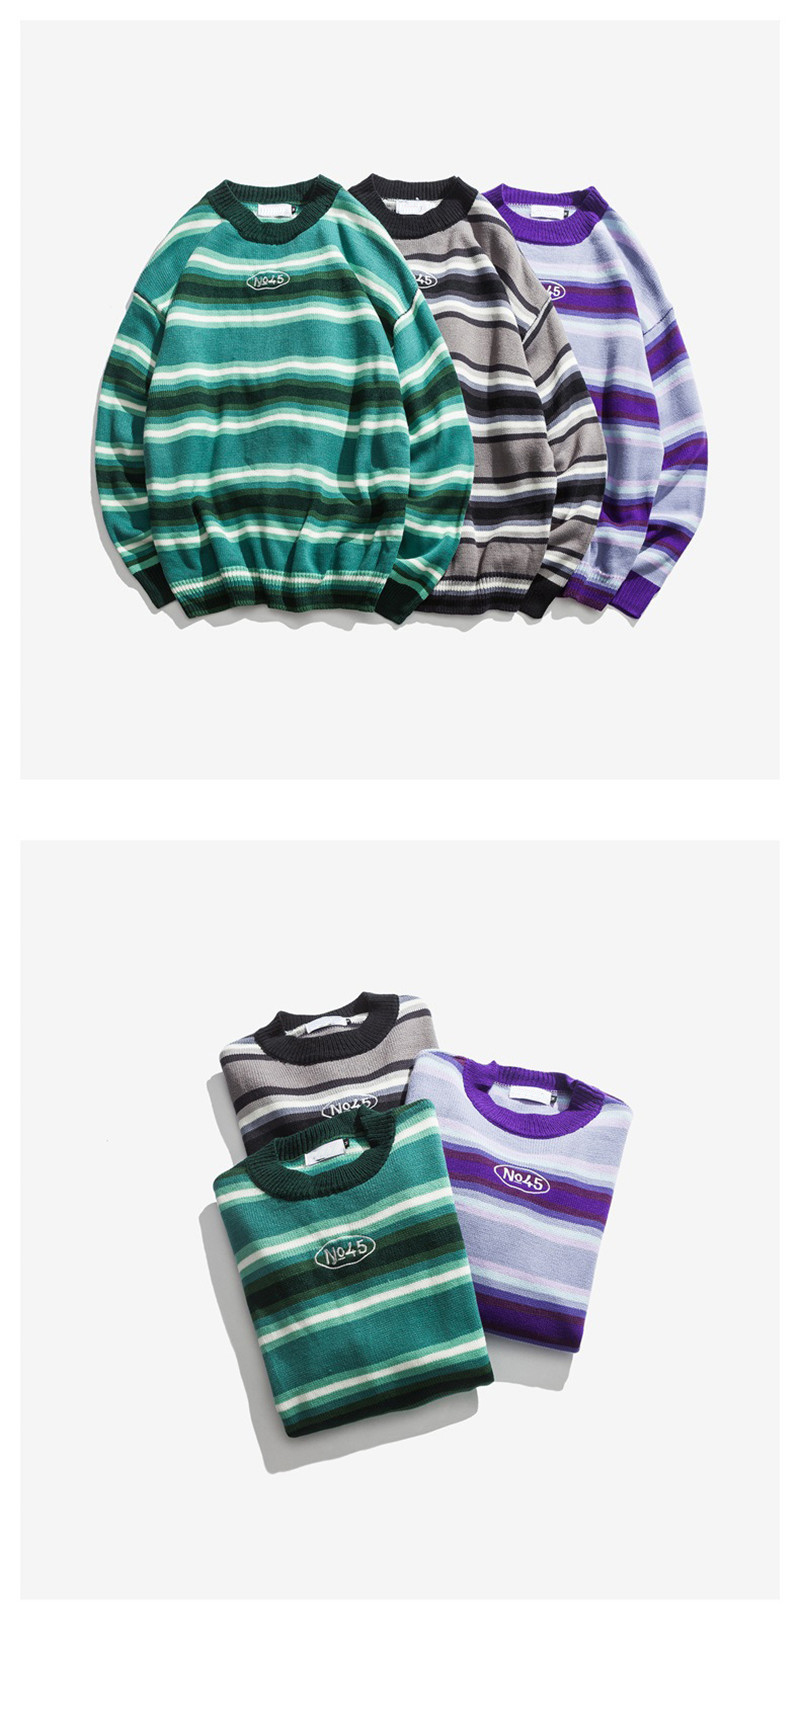 Knitted Japanese Harajuku Style Striped Sweater for Men Urban Boys Street Wear Crewneck Embroidery Pullover Jumper Oversized 6